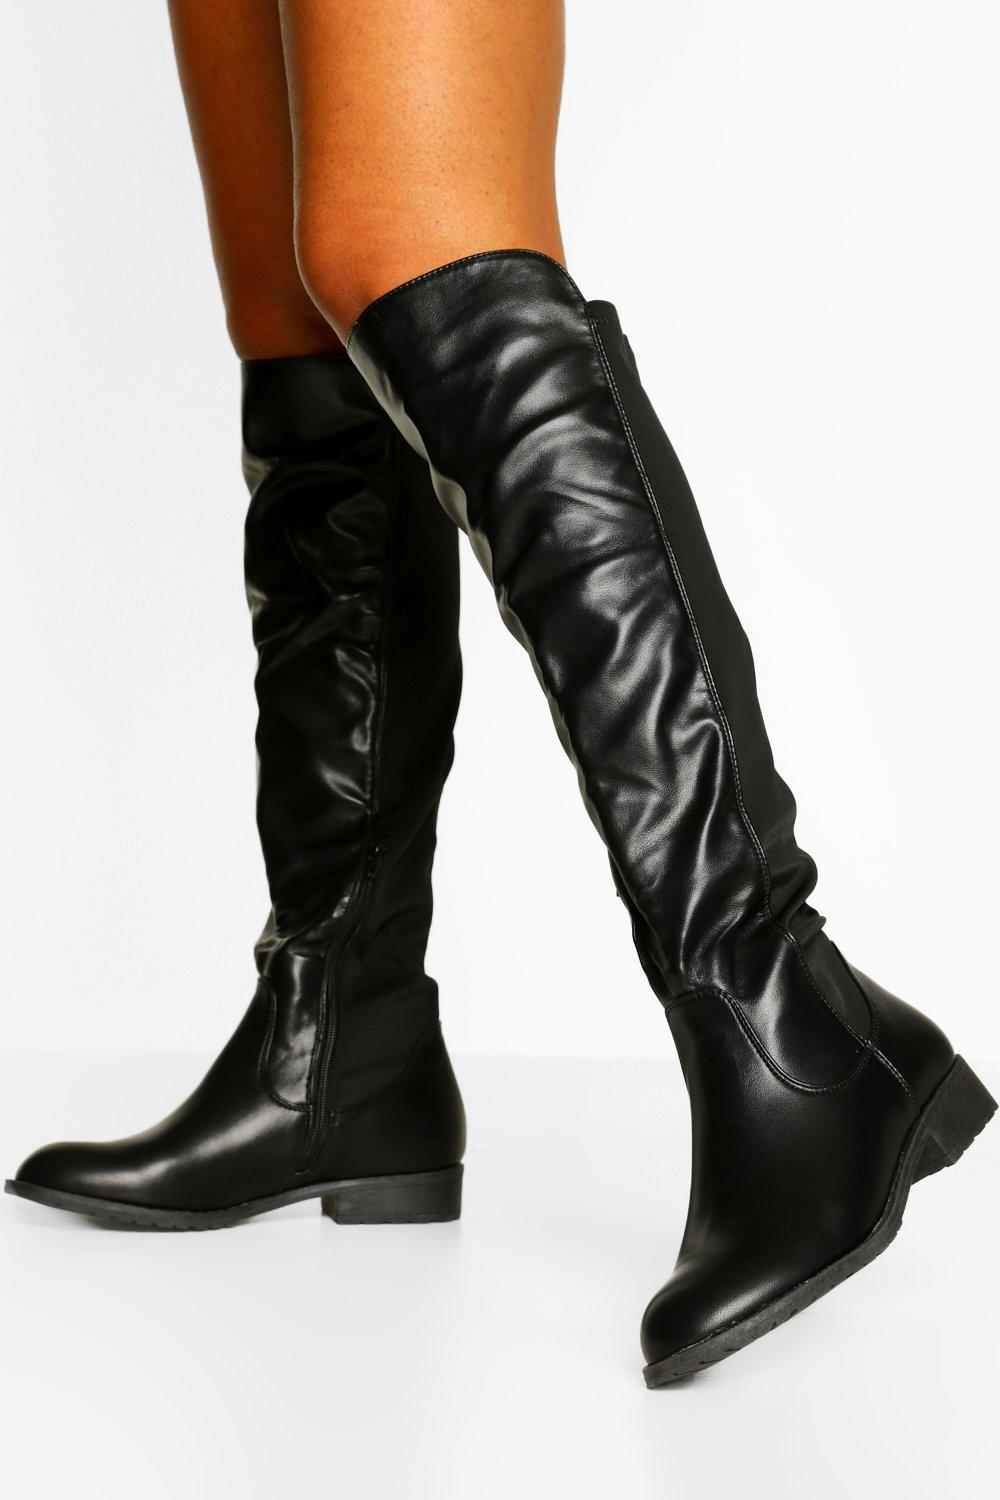 boohoo Tall Fit Knee High Riding Boots